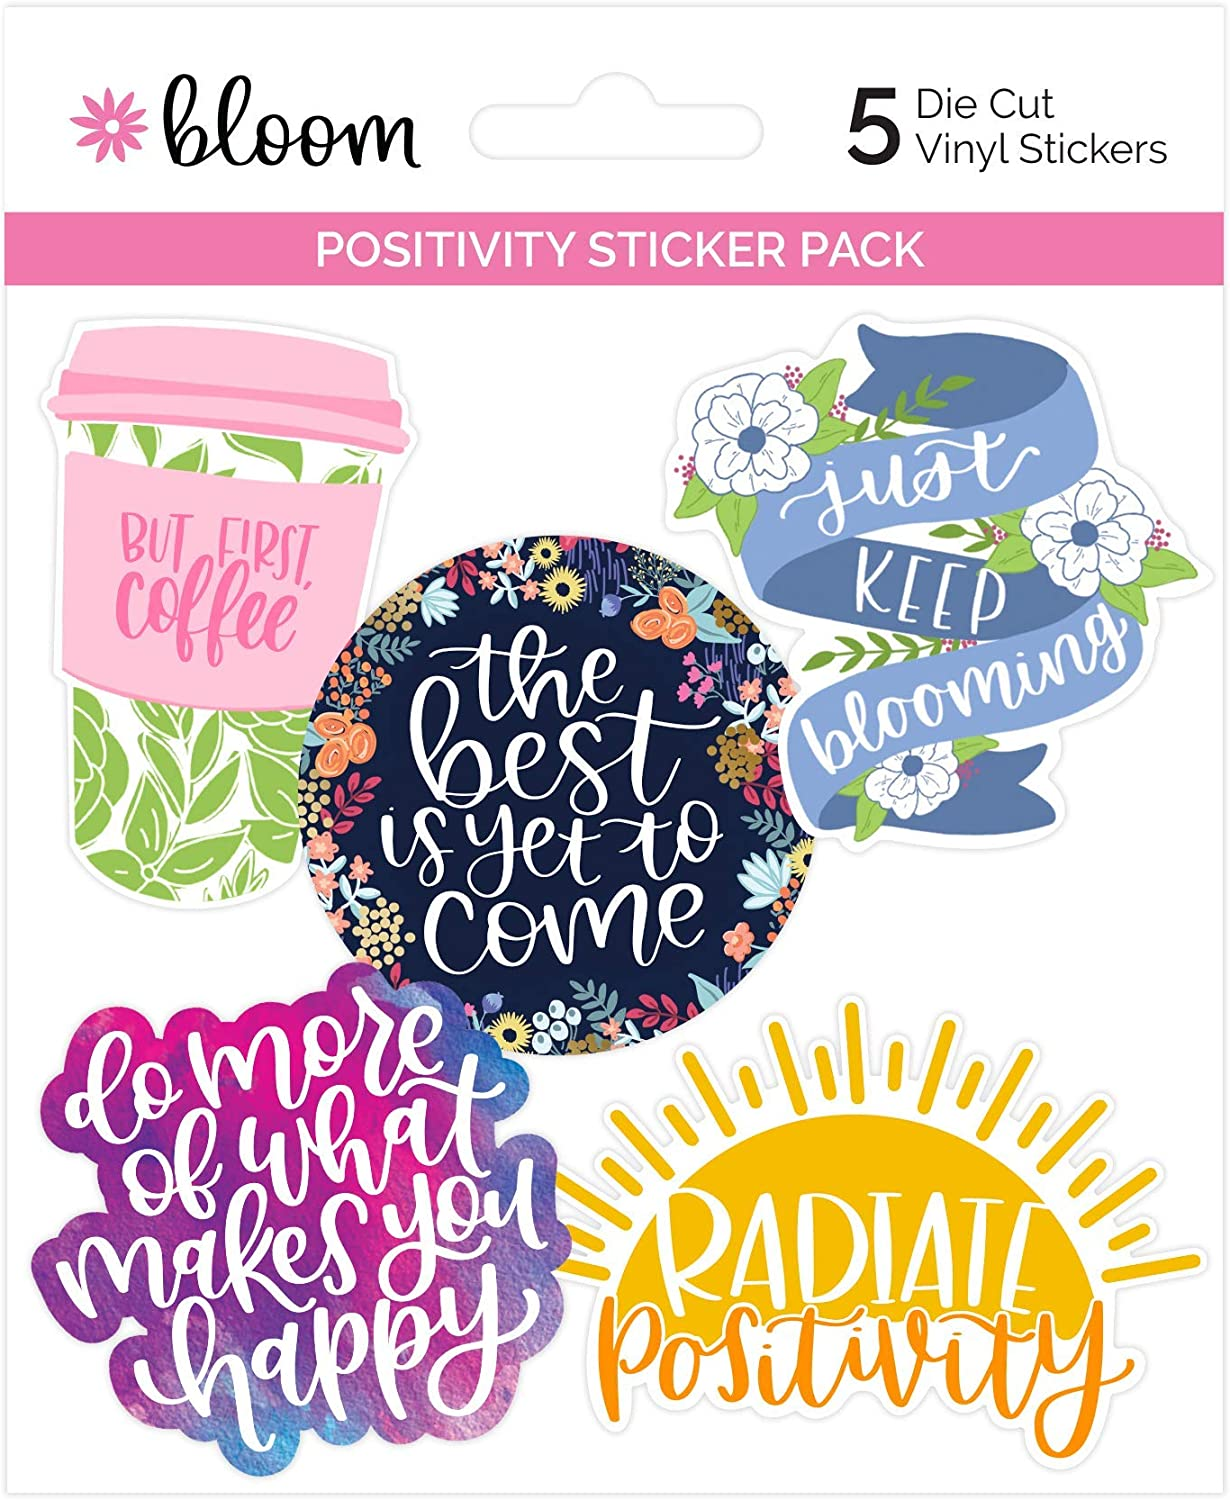 bloom daily planners Vinyl Sticker Set - 5 Colorful, Hand-Drawn Decals for Laptops, Water Bottles & More! (~3.5